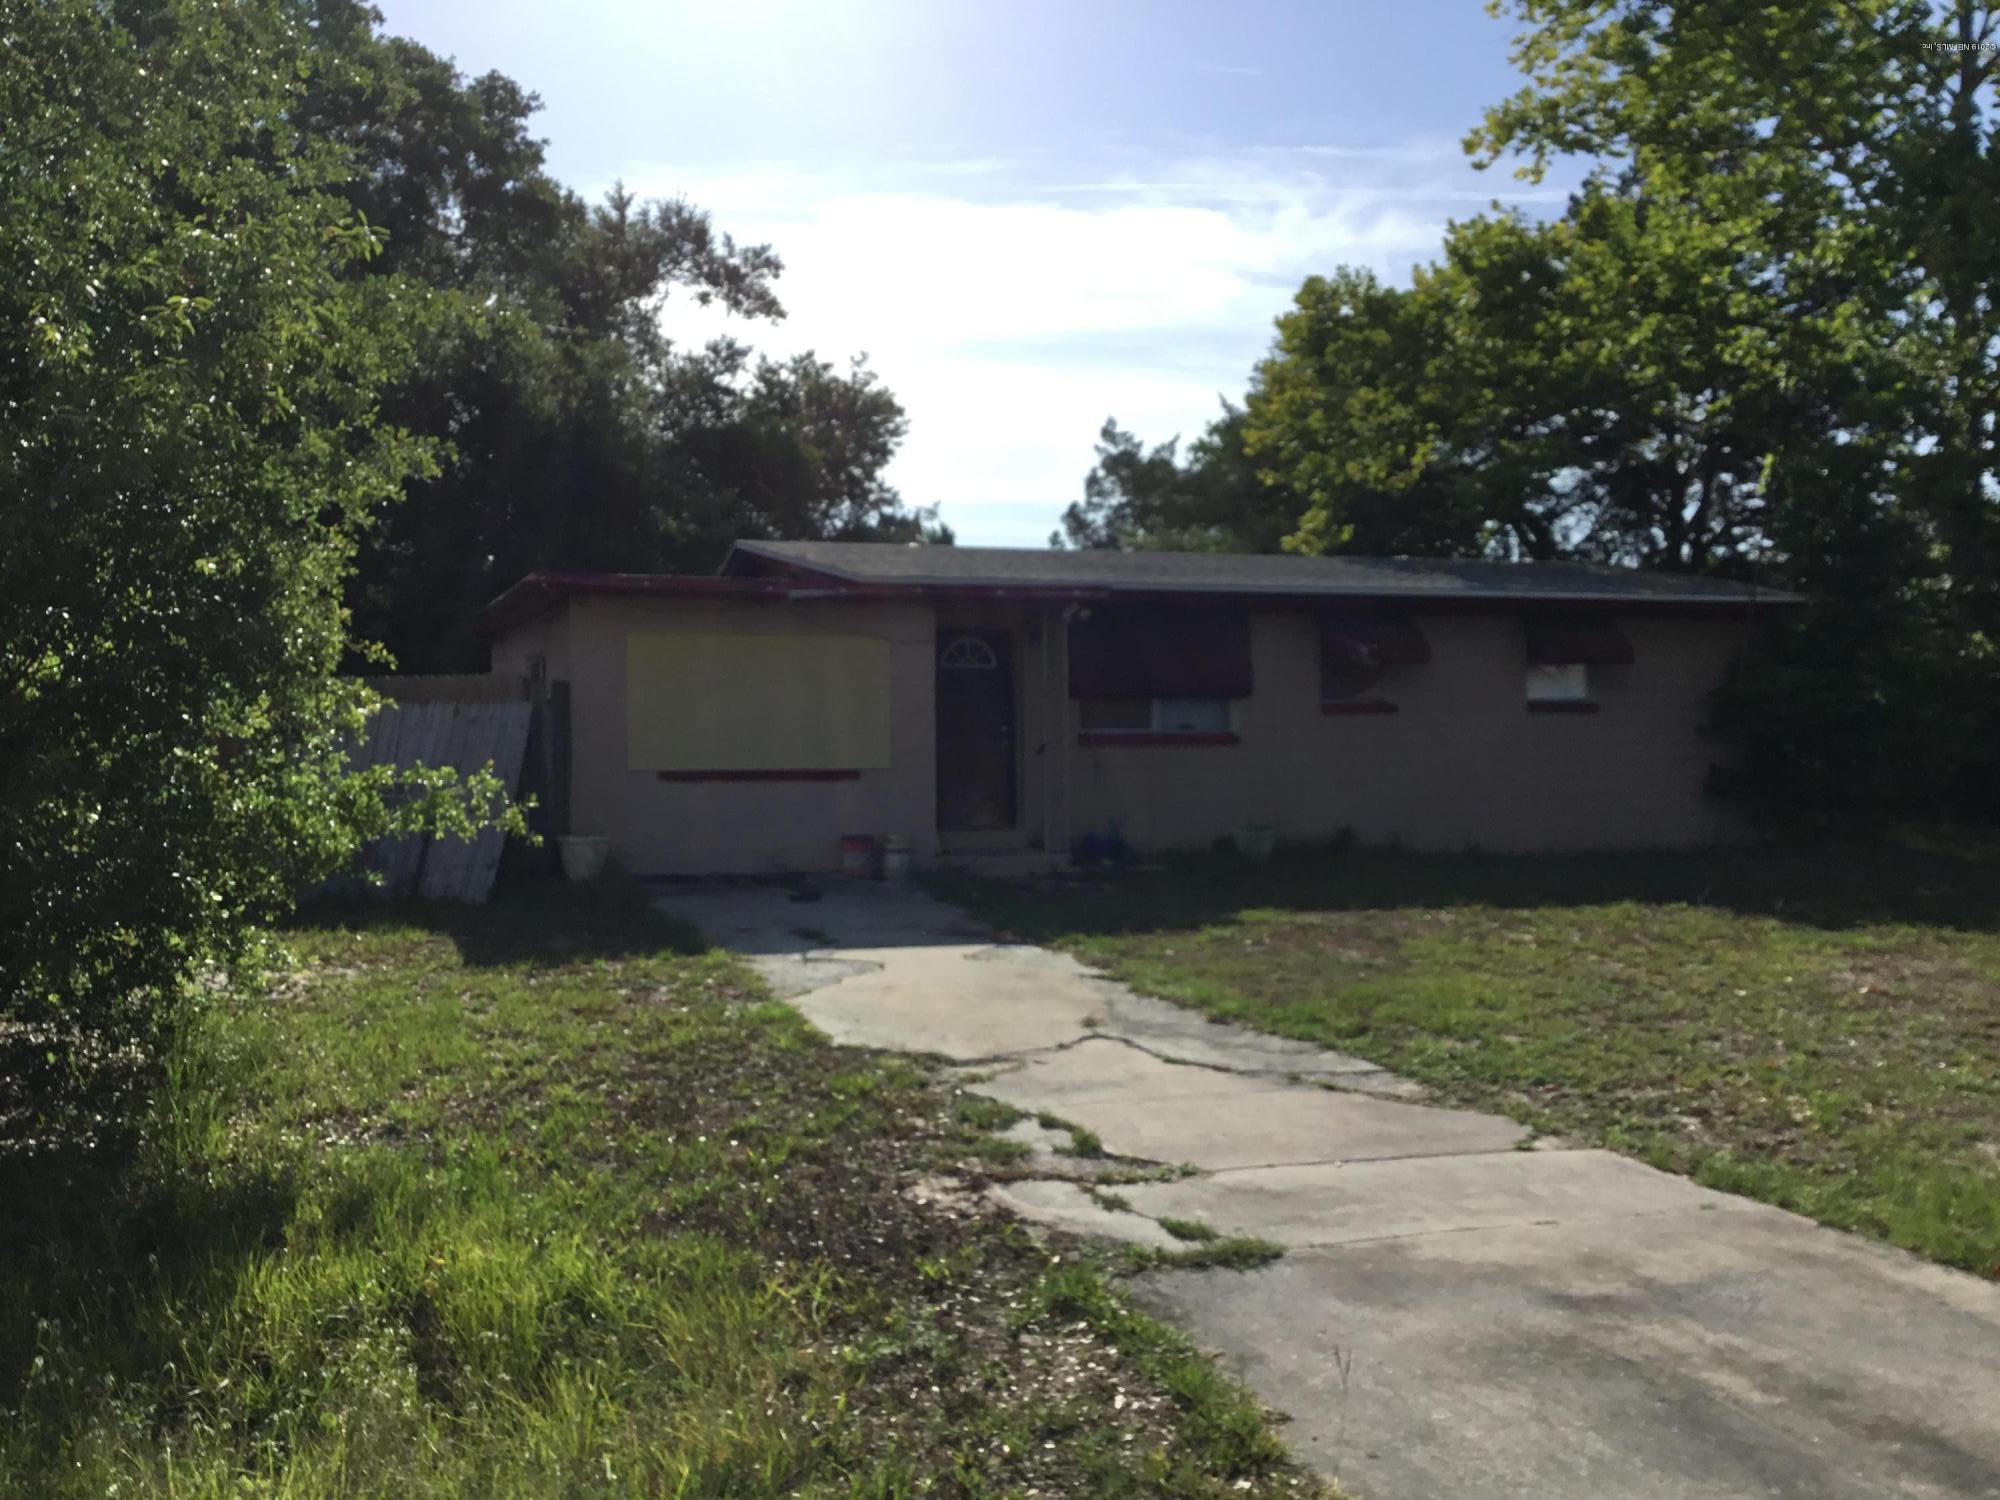 351 WOODSIDE, ORANGE PARK, FLORIDA 32073, 3 Bedrooms Bedrooms, ,1 BathroomBathrooms,Residential - single family,For sale,WOODSIDE,1000798